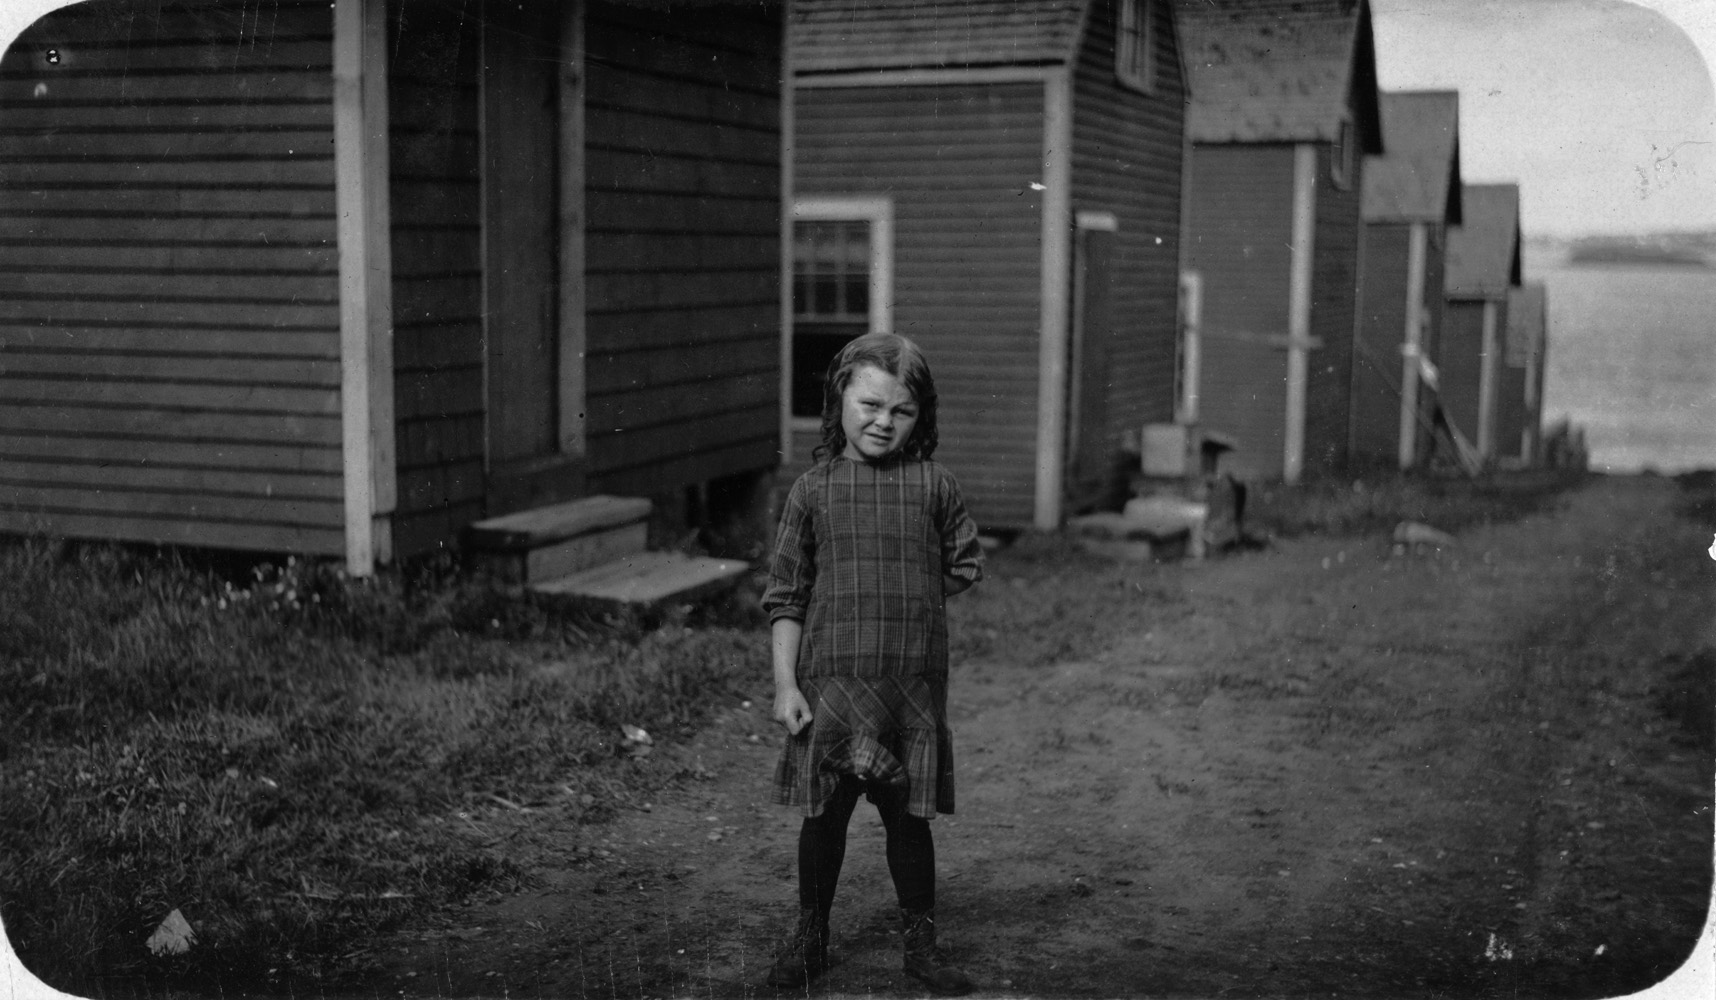 "Elsie Shaw, fish cannery worker, six years old, Eastport, Maine, 1911. Elsie Shaw, a 6 year old cartoner during the summer, Seacoast Canning Co., Factory #2. Her father is boss of cutting room in Factory #1. He asked me to take some photos of her, as he has her do a singing act in vaudeville in the winter,  and she's old enough now to go through the audience and sell her own photos.  —Hine's original caption ""Nana loved to talk about the days when she was in vaudeville as a young child. She would tell me stories about performing on stage, singing and dancing and doing little skits."" —Granddaughter of Elsie Shaw"